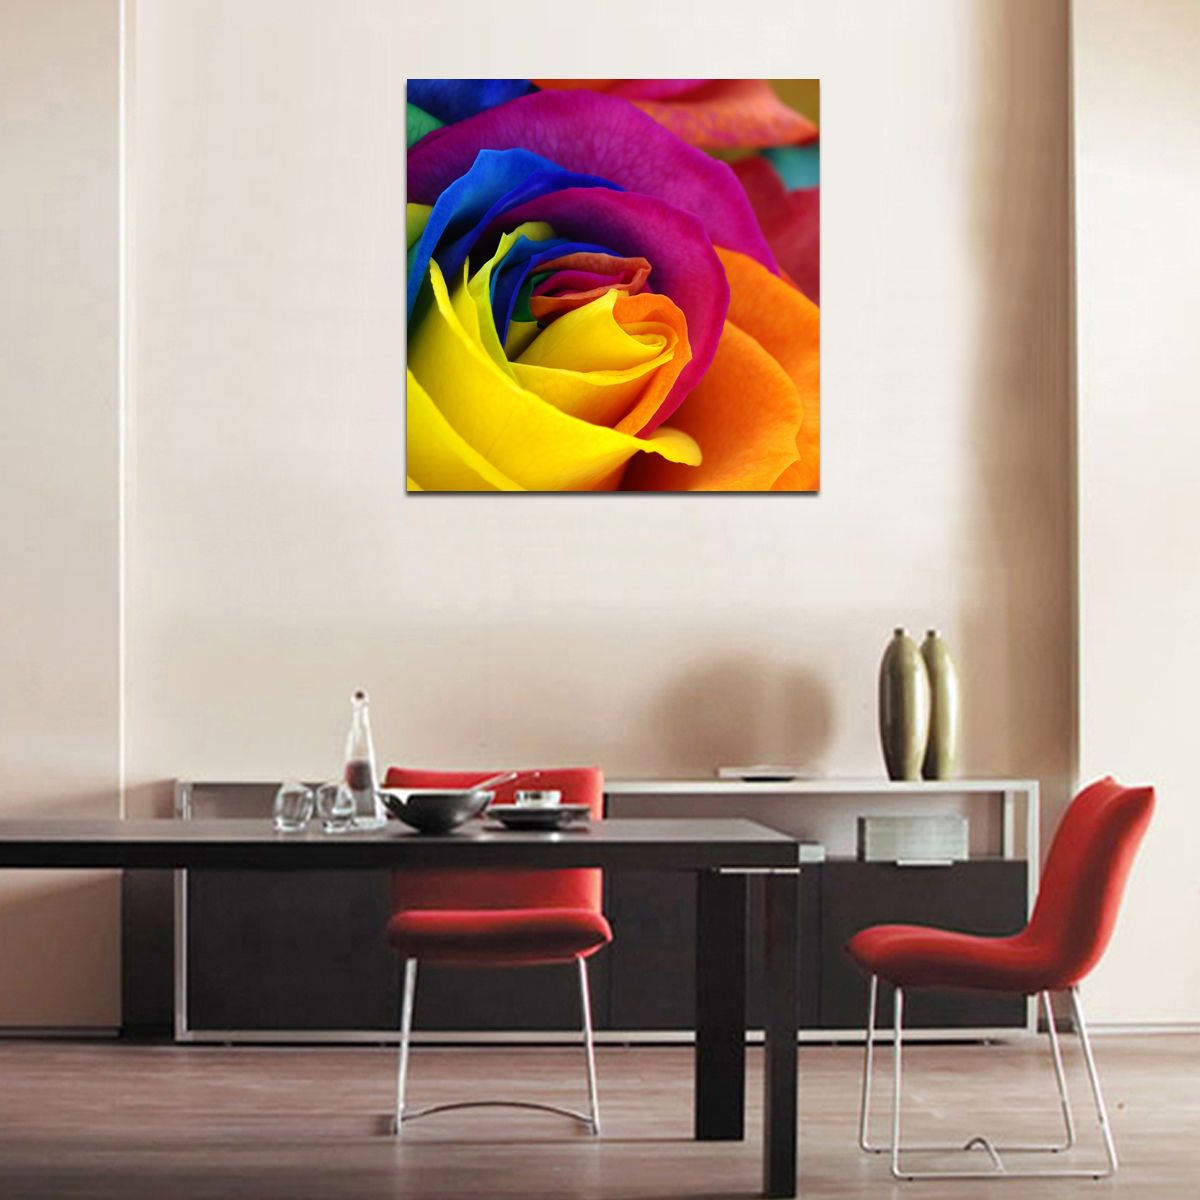 Us modern large picture hd canvas prints wall art painting framed